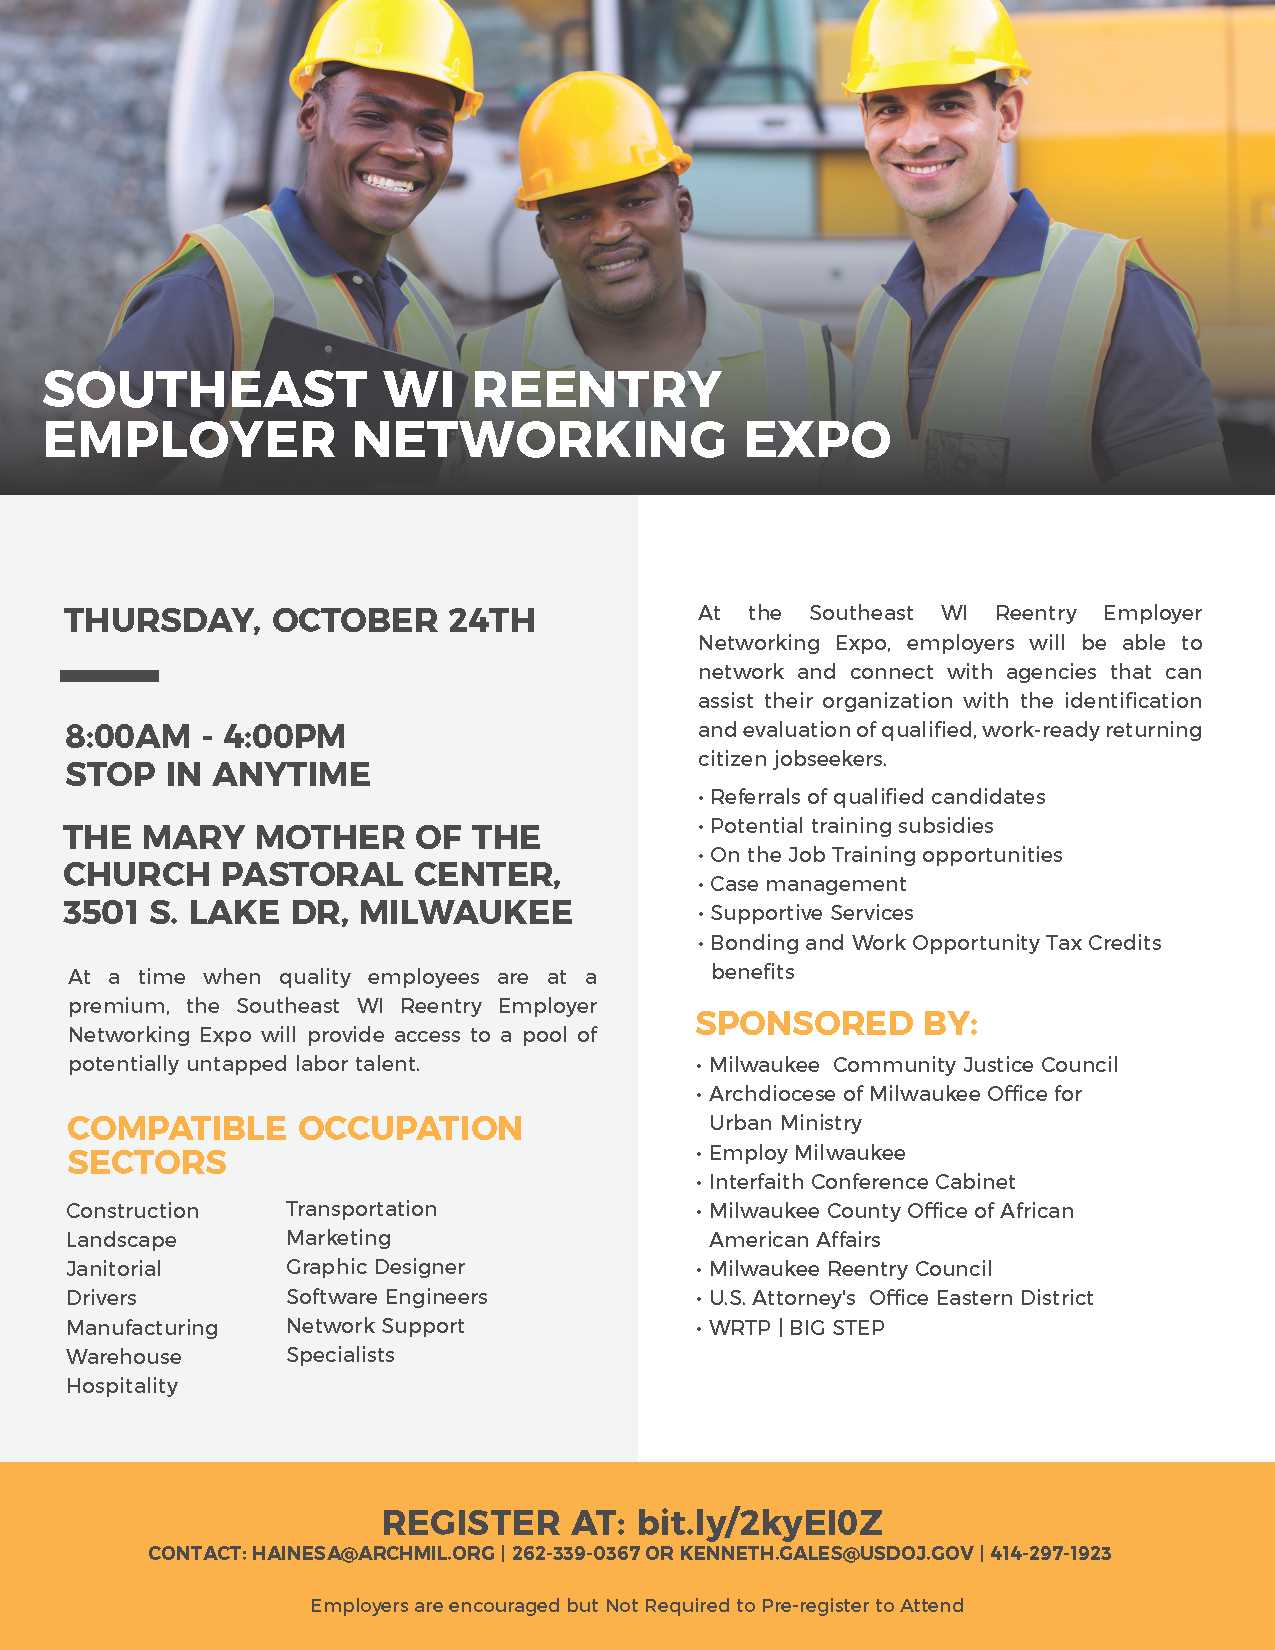 Southeast WI Reentry Employer Networking Expo